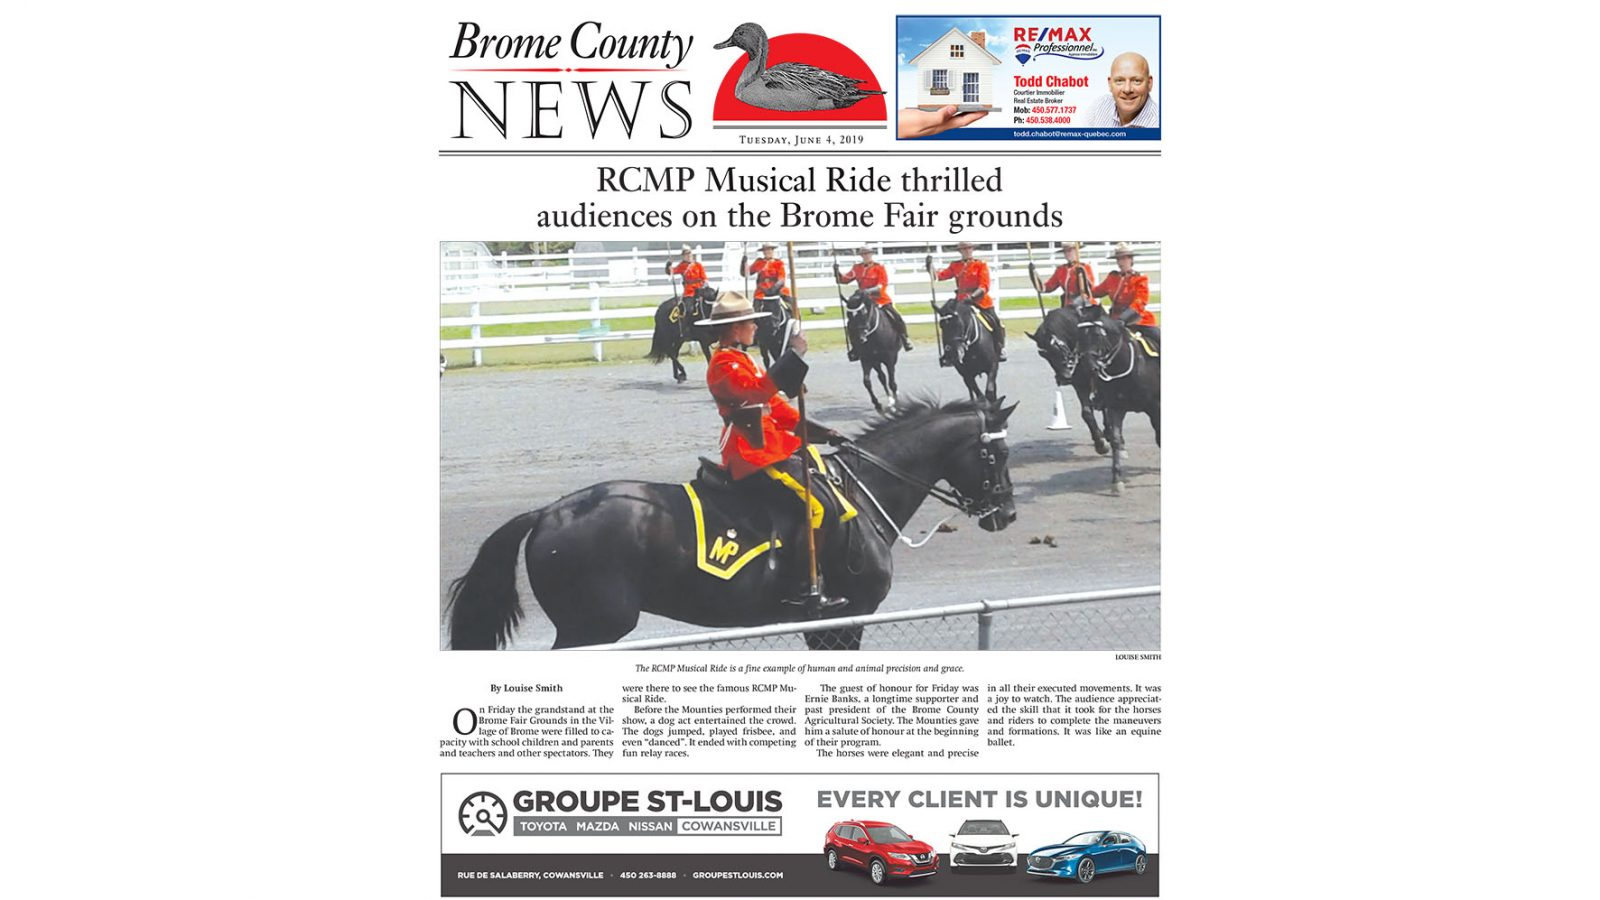 Brome County News – June 4, 2019 edition